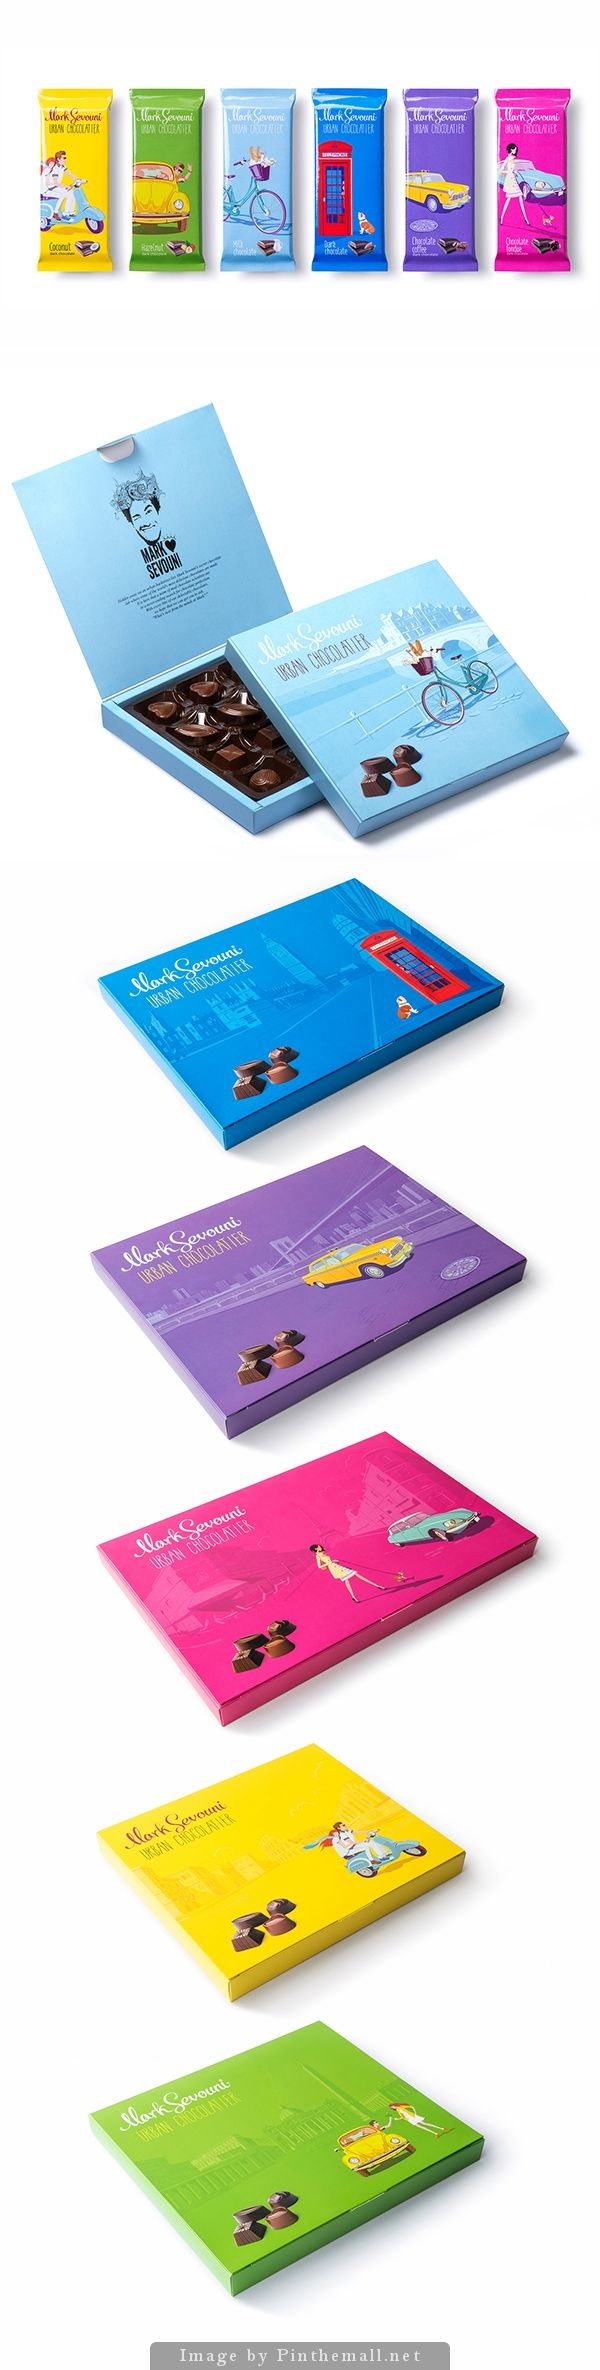 Who wants some colorful Mark Sevouni urban chocolatier #packaging curated by Packaging Diva PD created via https://www.behance.net/gallery/18922555/Mark-Sevouni